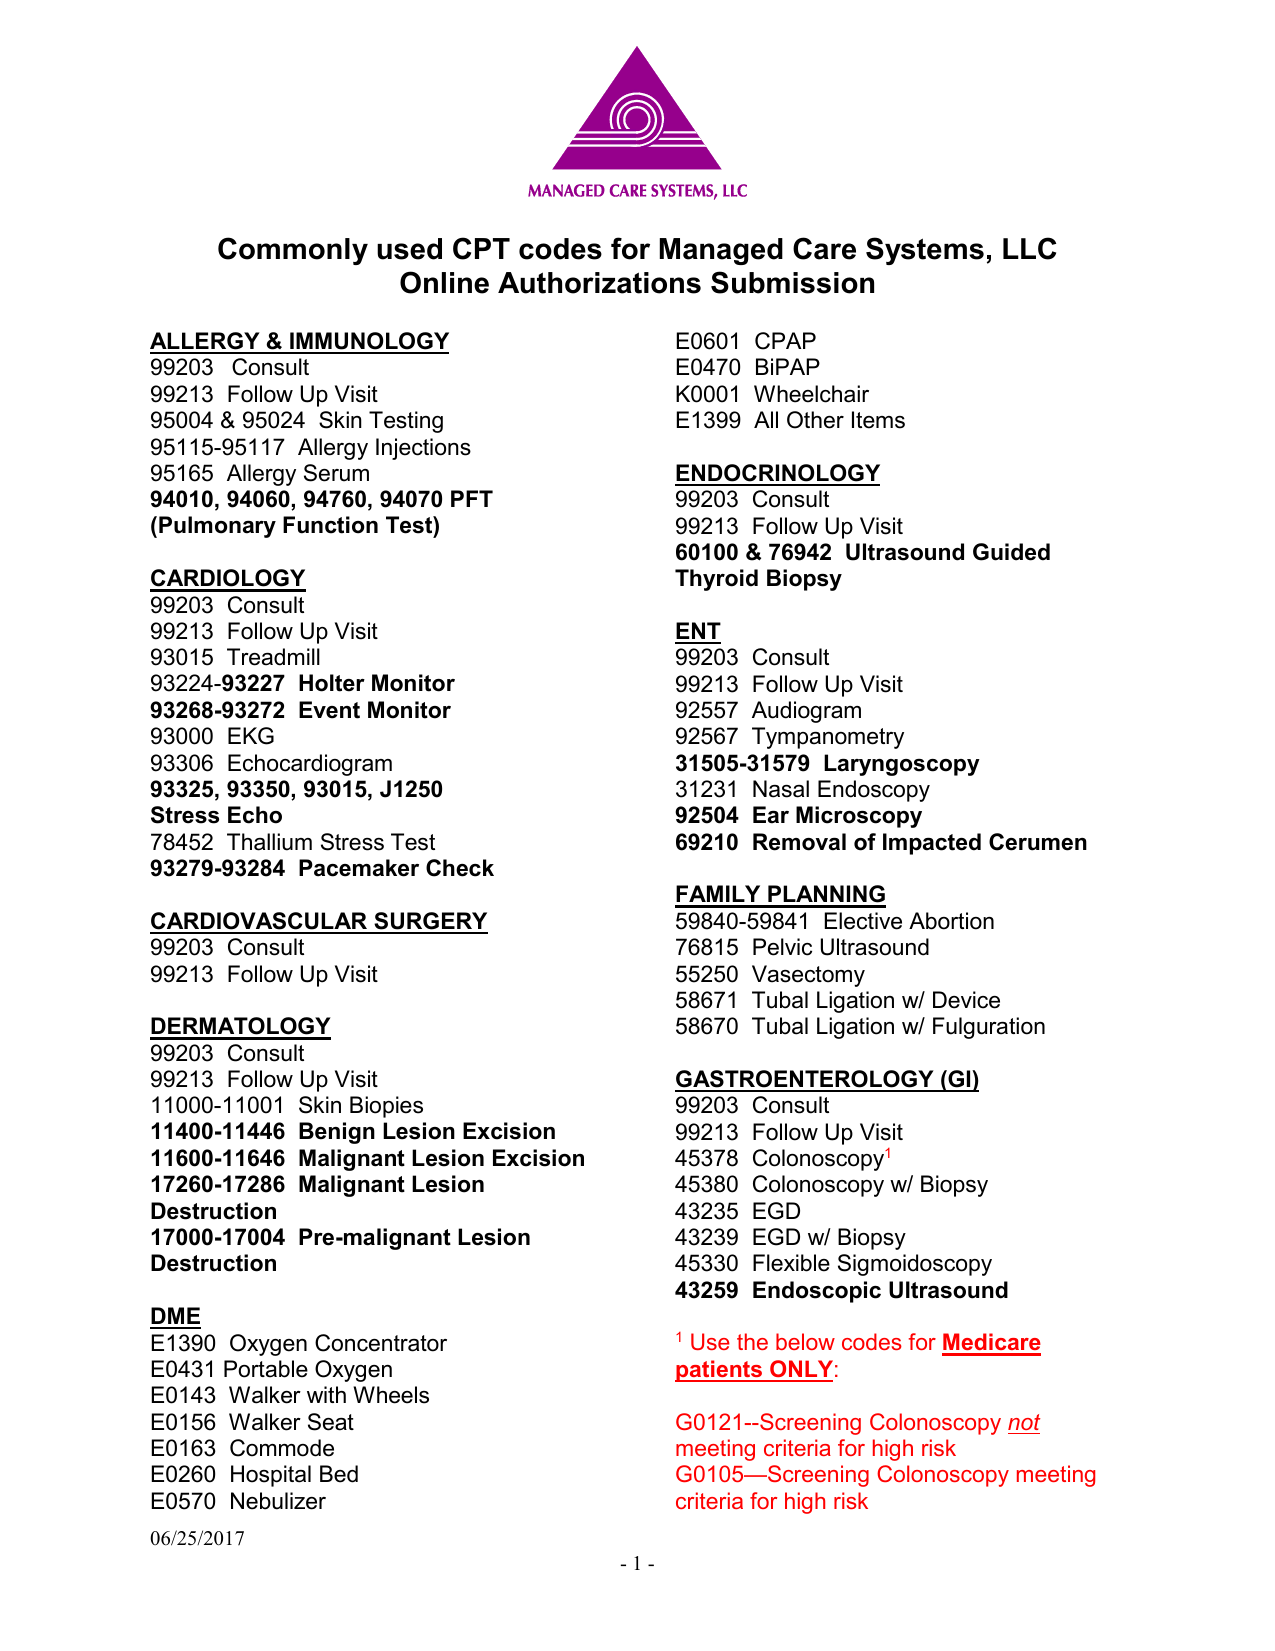 cpt codes - Managed Care Systems